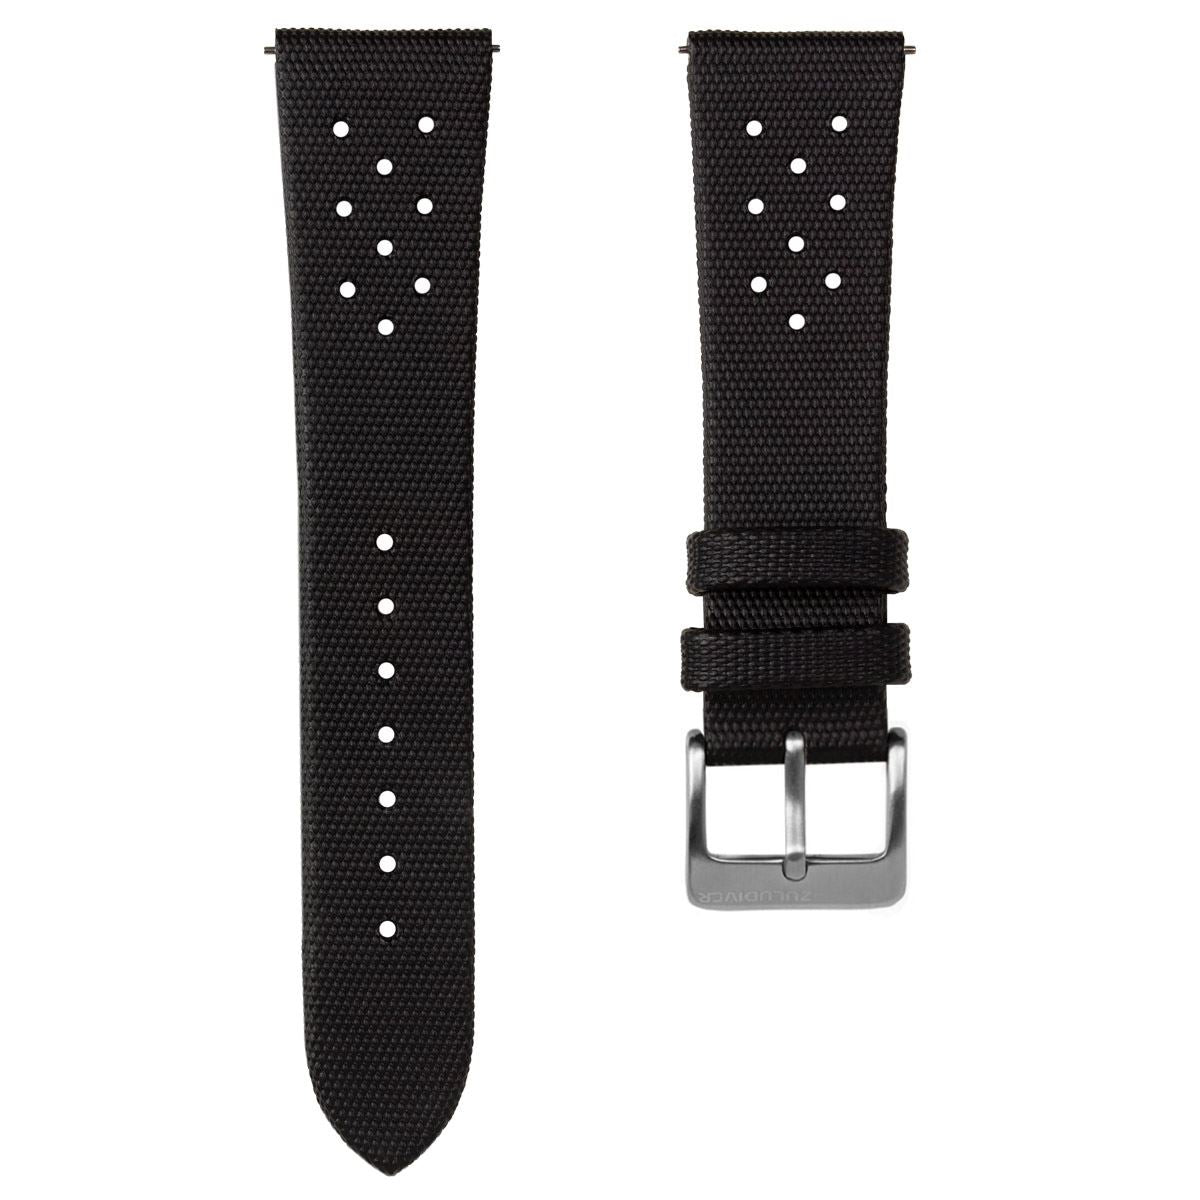 Vintage Style ZULUDIVER QR Sailcloth Perforated Watch Strap